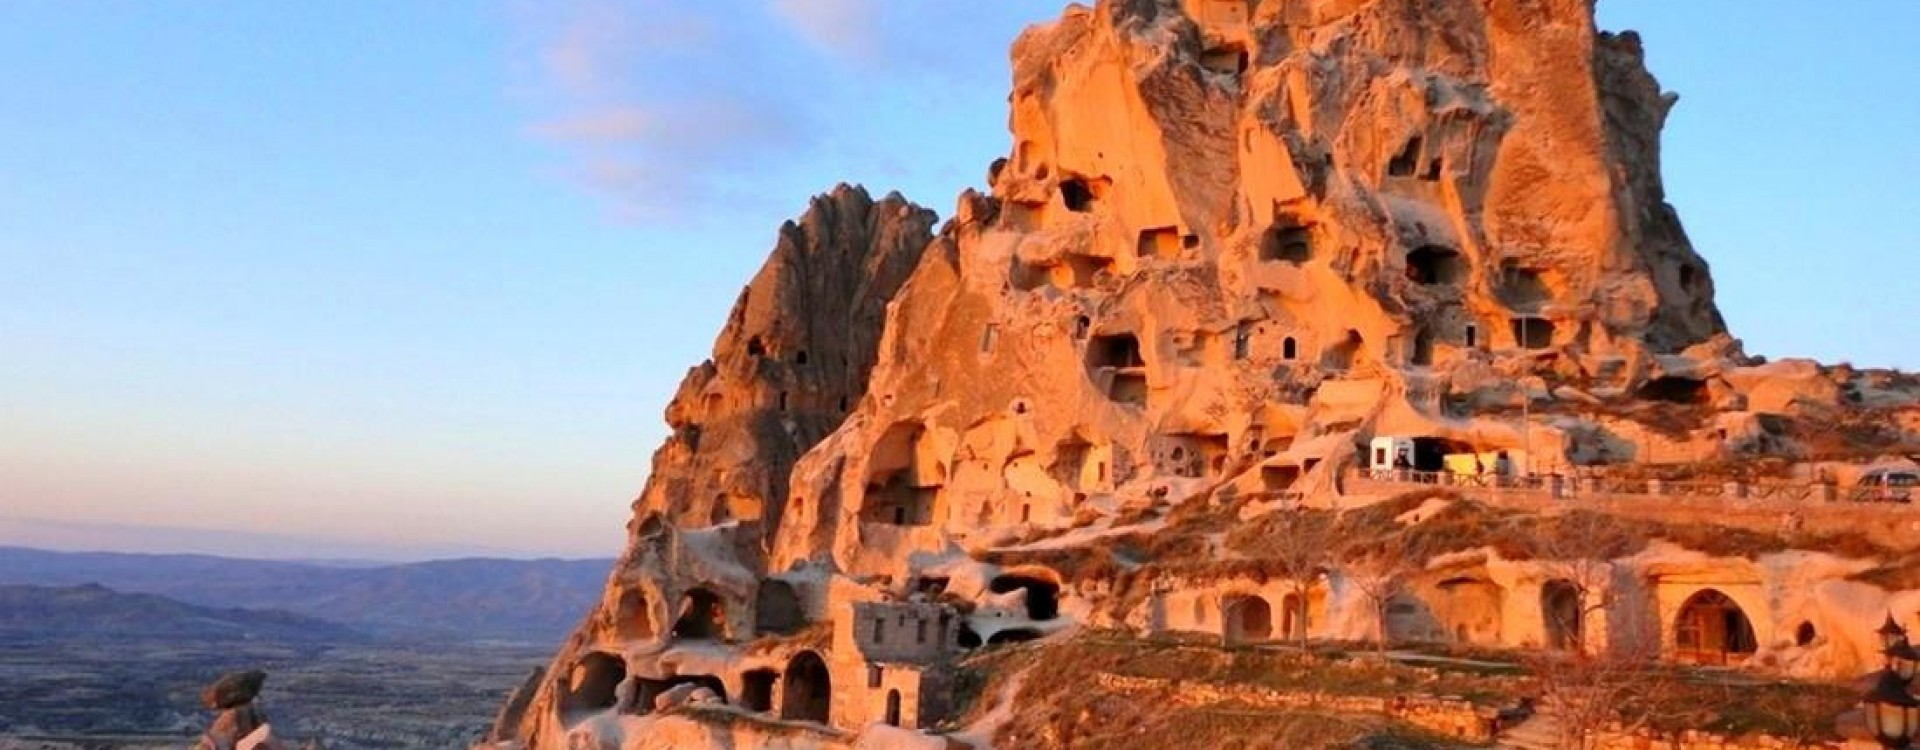 Towers and Trails of Cappadocia walking holiday